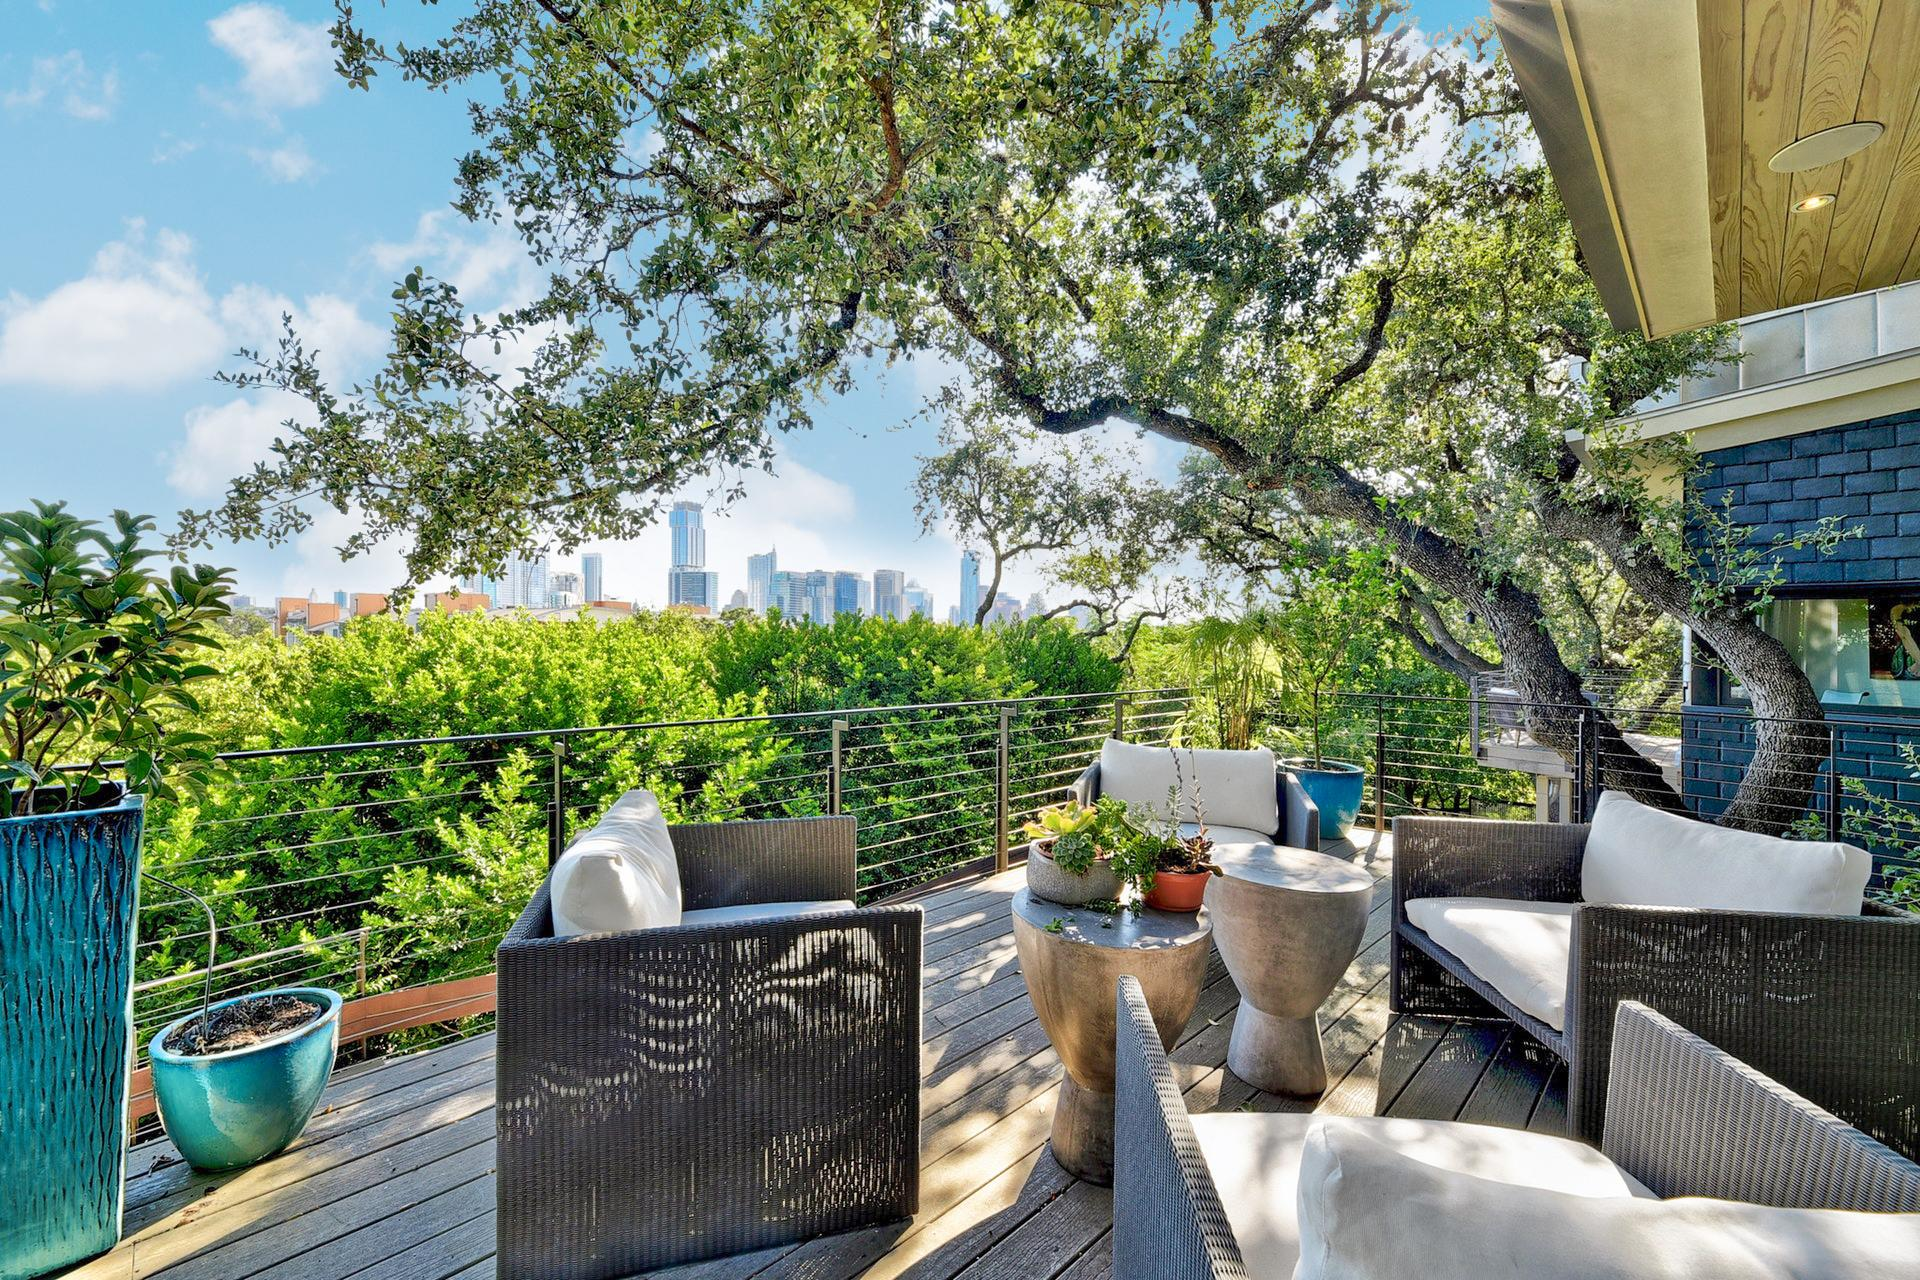 Enjoy jaw-dropping skyline views above the large heritage oak trees and enviable proximity to Barton Springs, Ladybird Lake, and Downtown Austin.